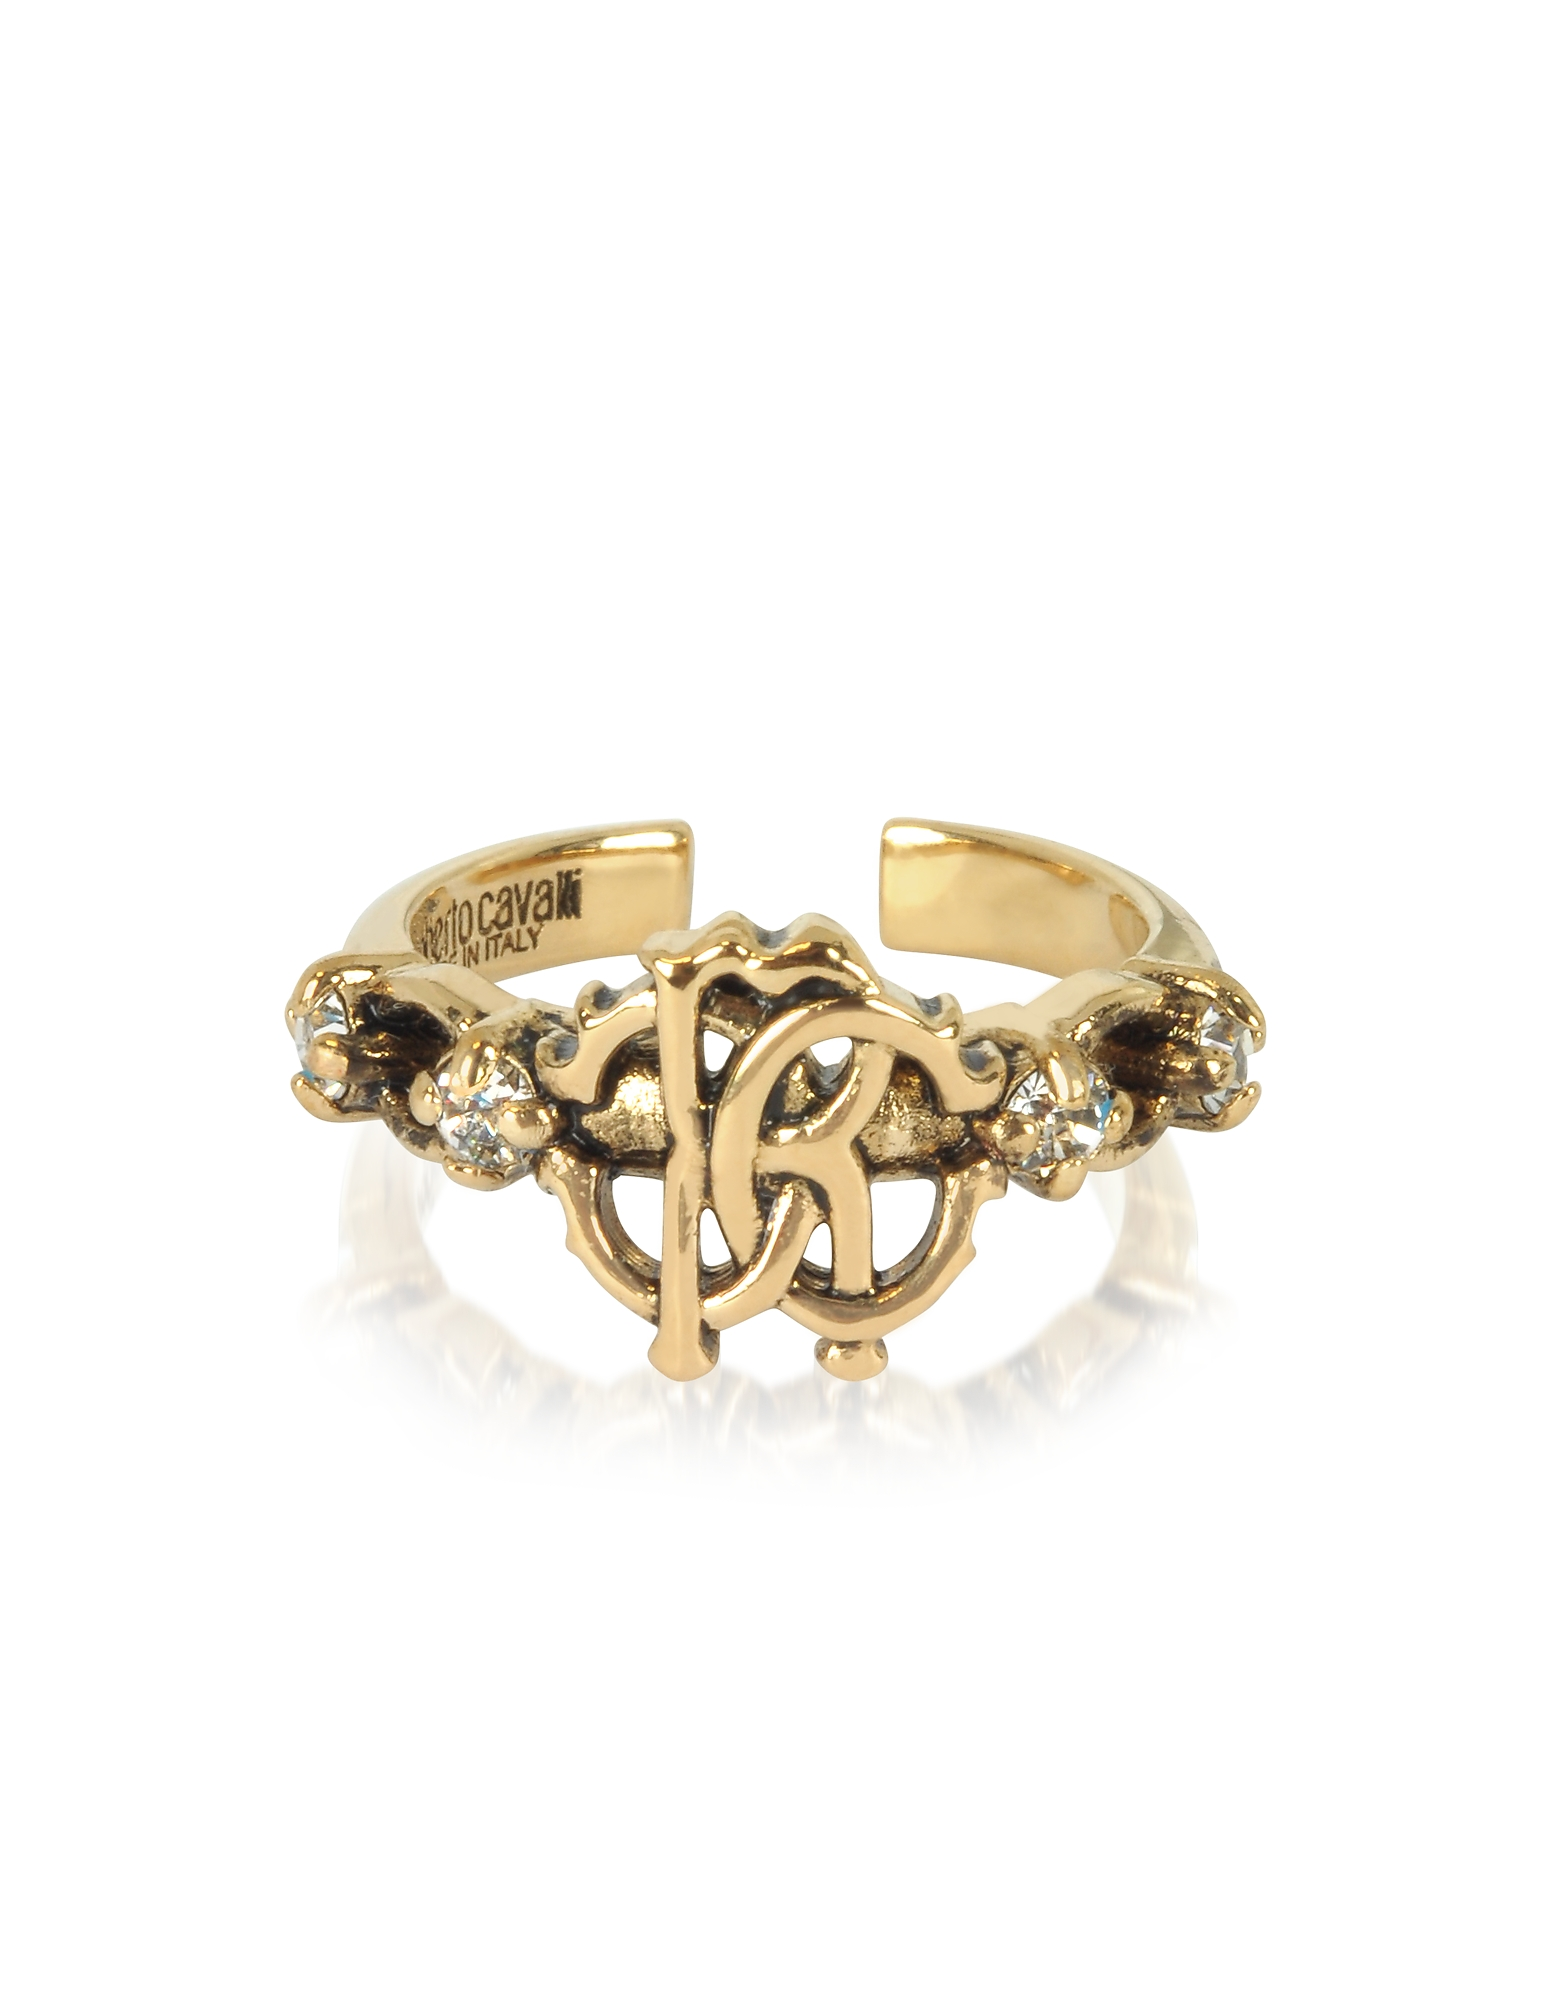 Roberto Cavalli Rings, Brushed Goldtone RC Icon Ring